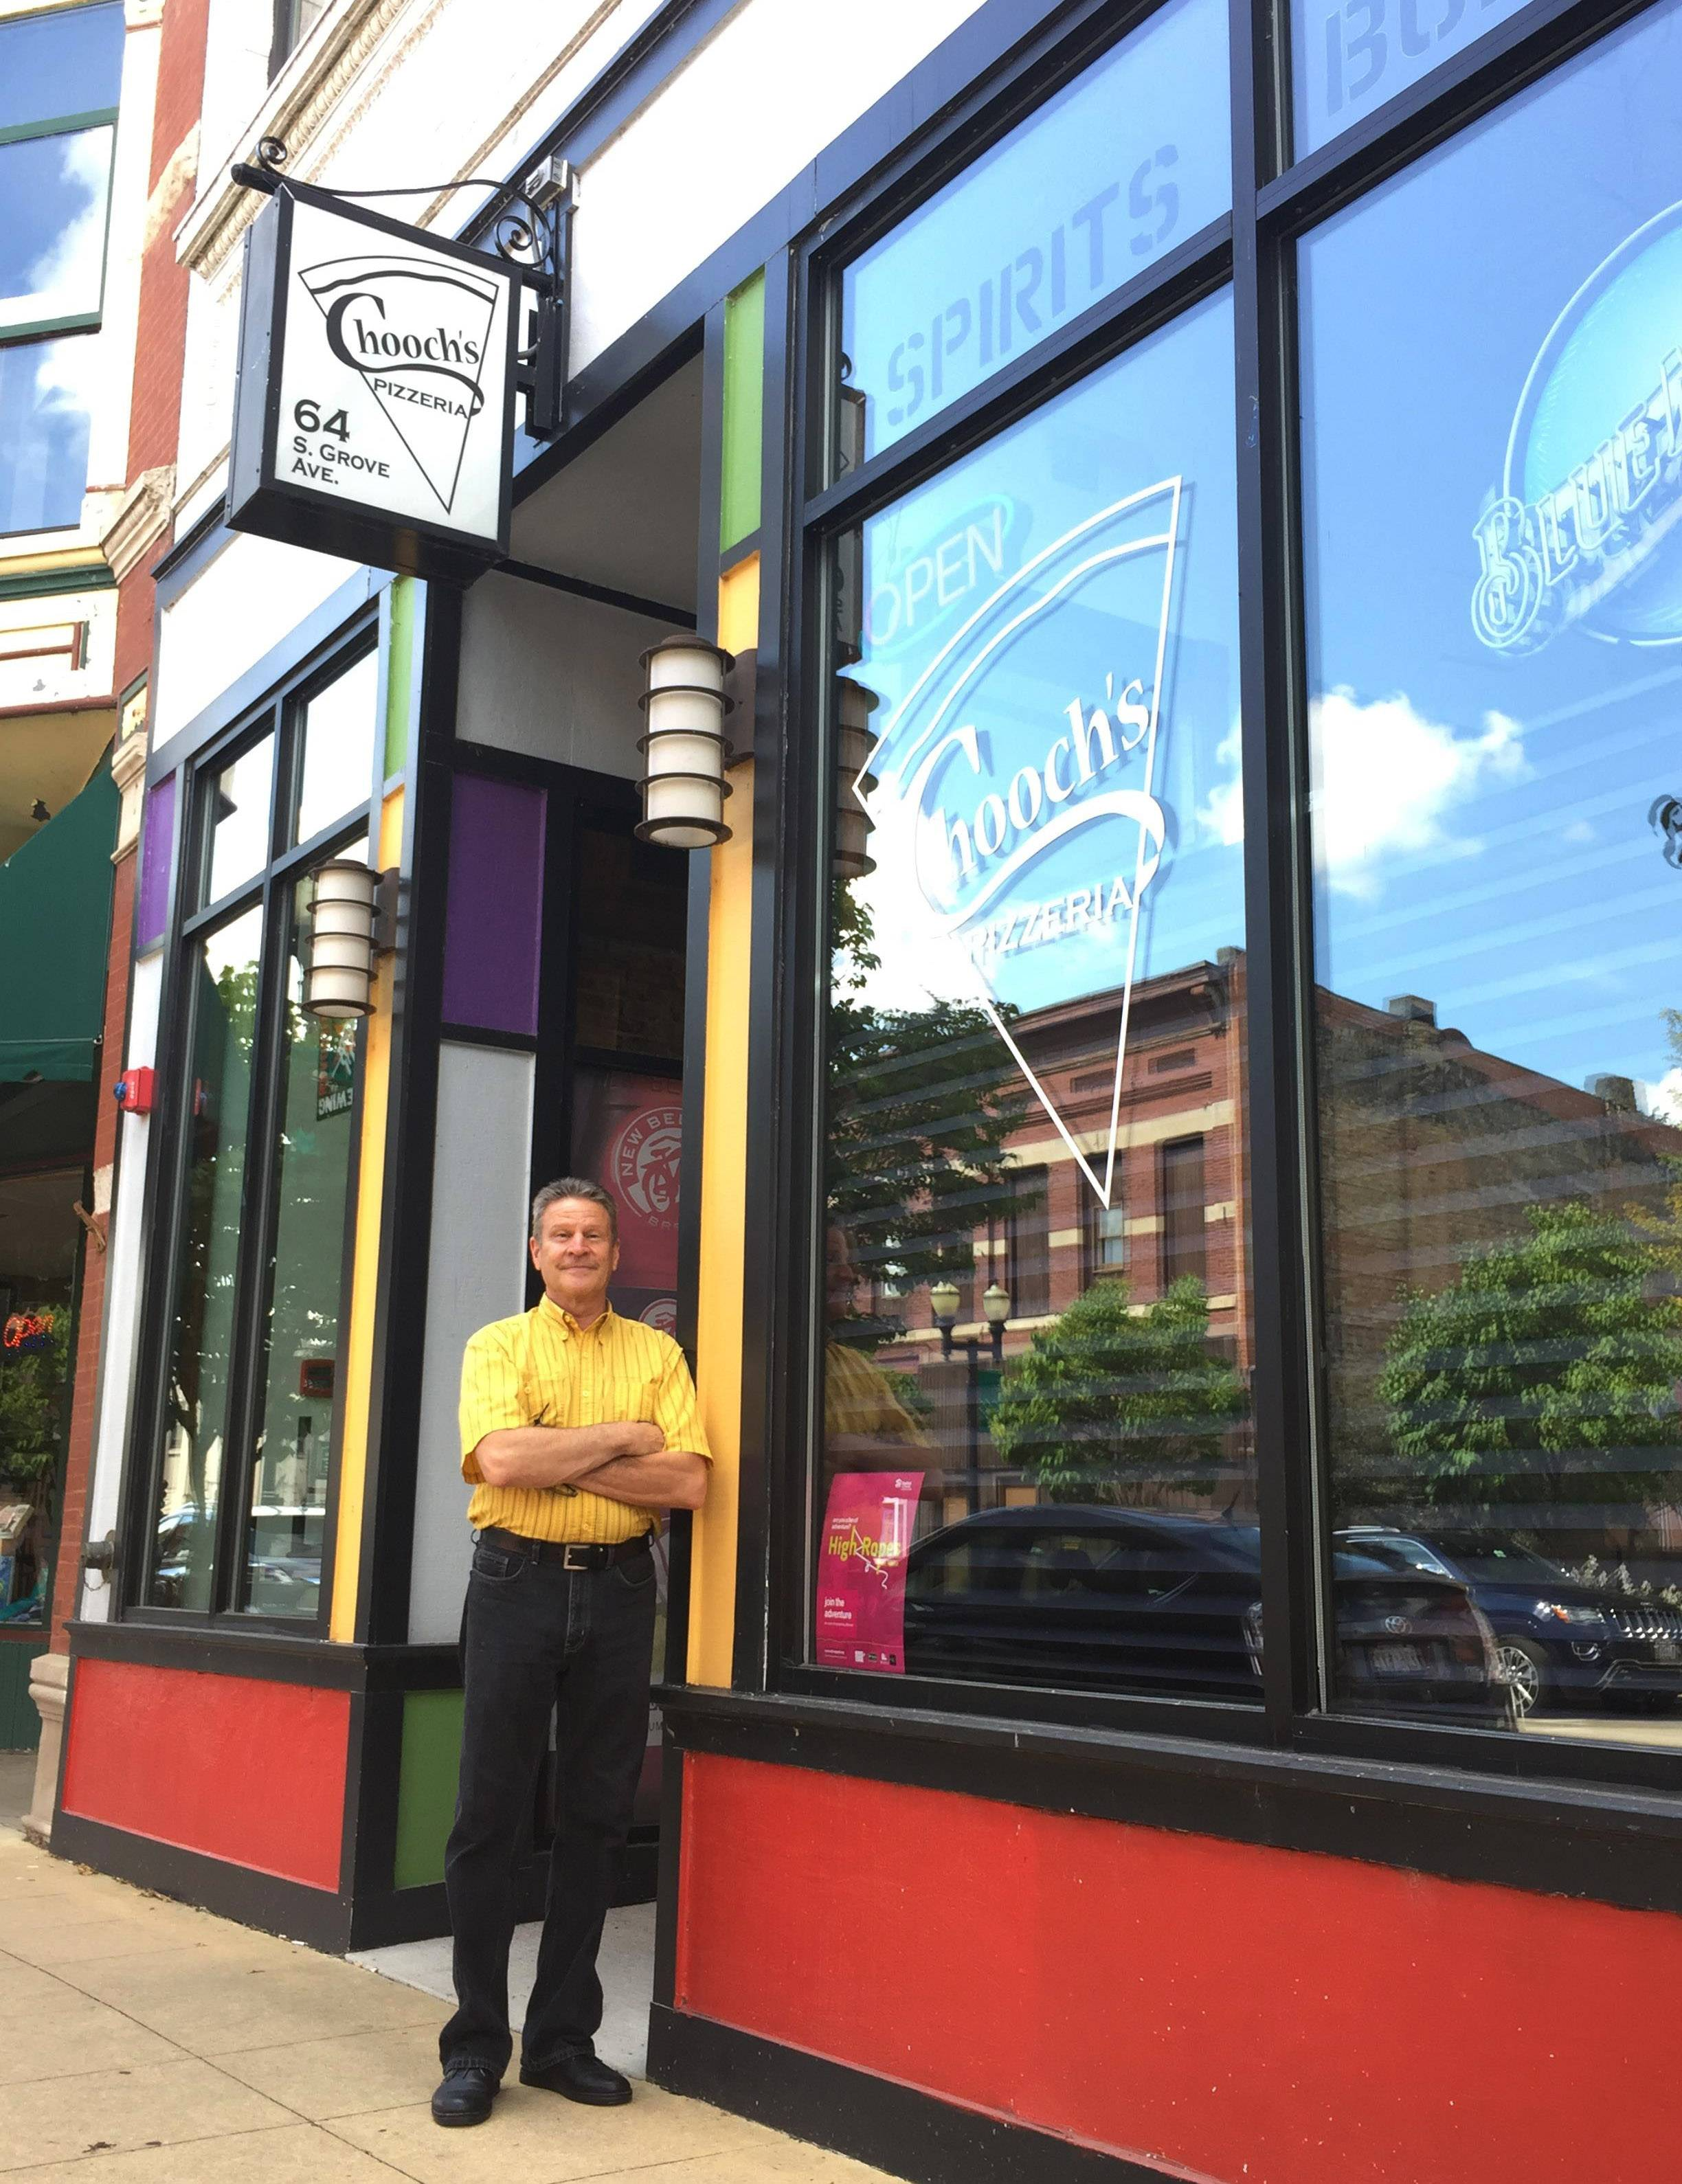 Chooch's Pizzeria closes following co-owner's illness